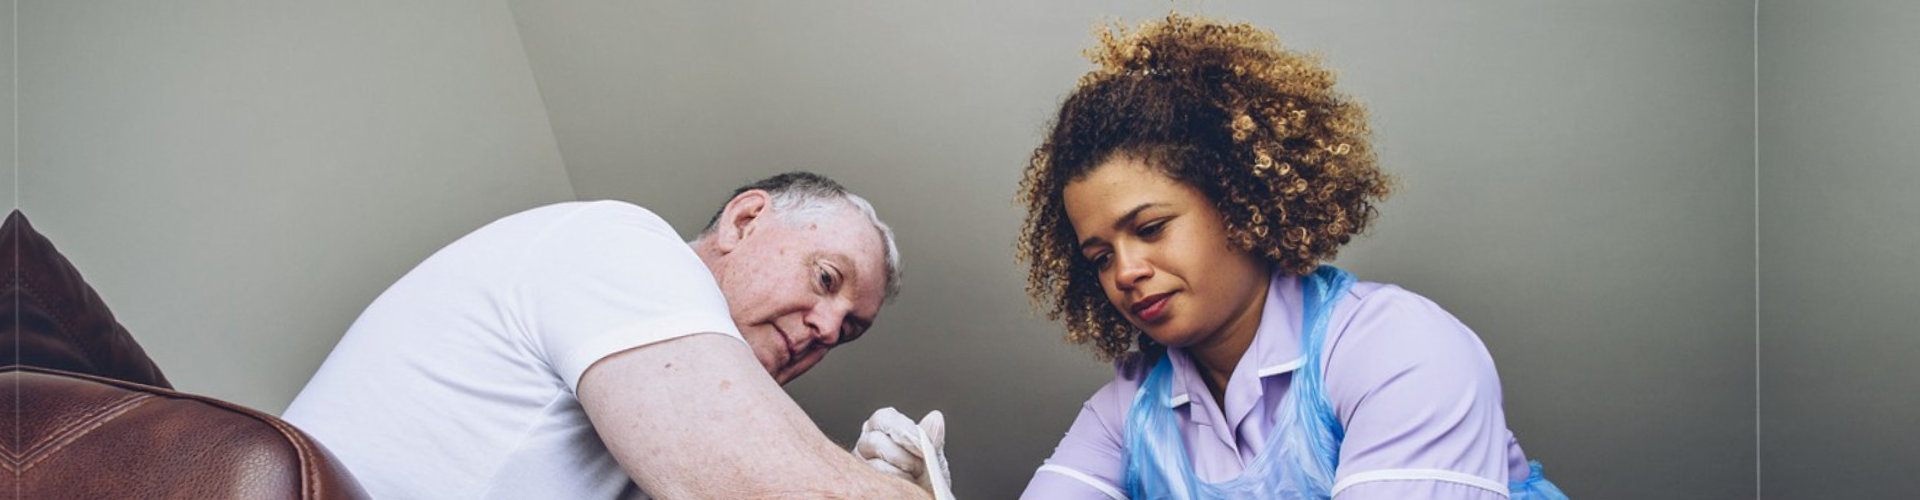 caregiver assisting senior man in cleaning